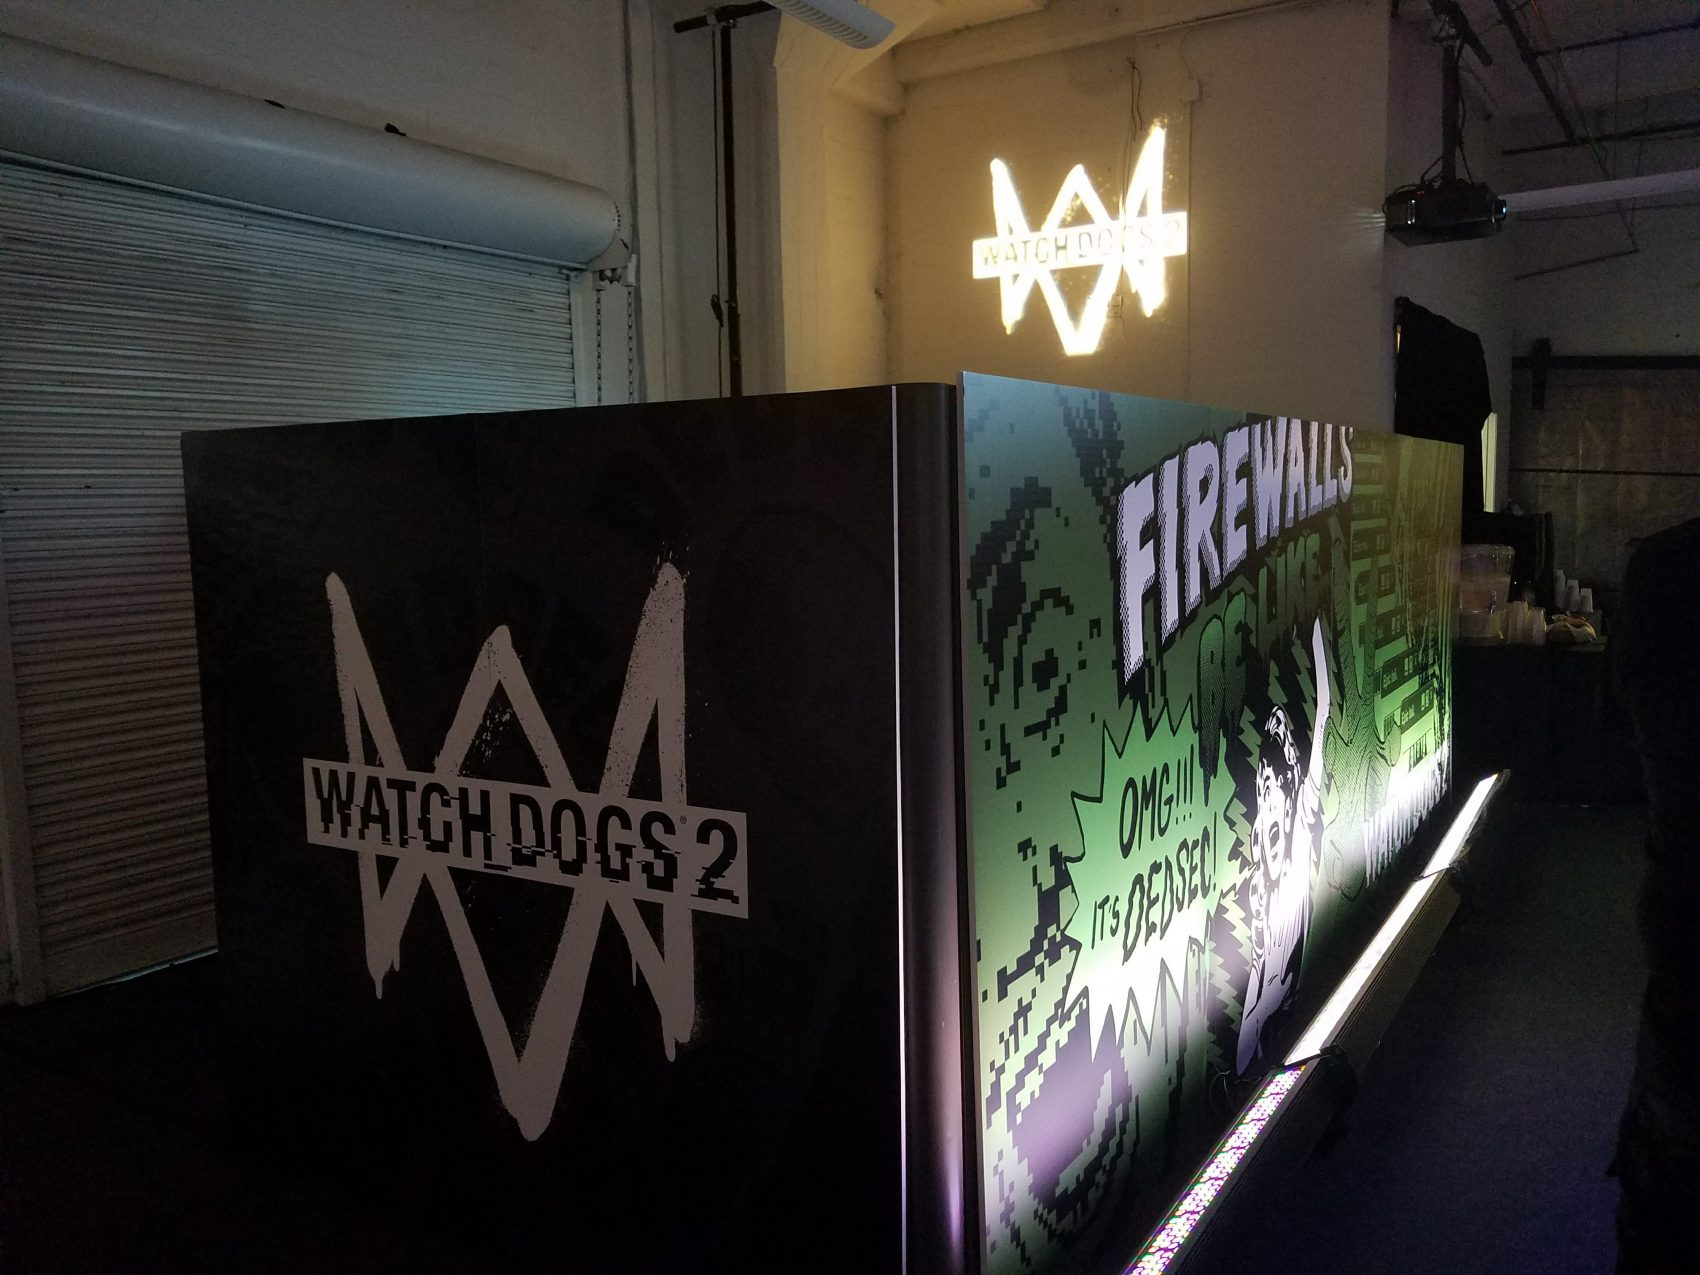 Printed Walls for Watchdog 2 Event